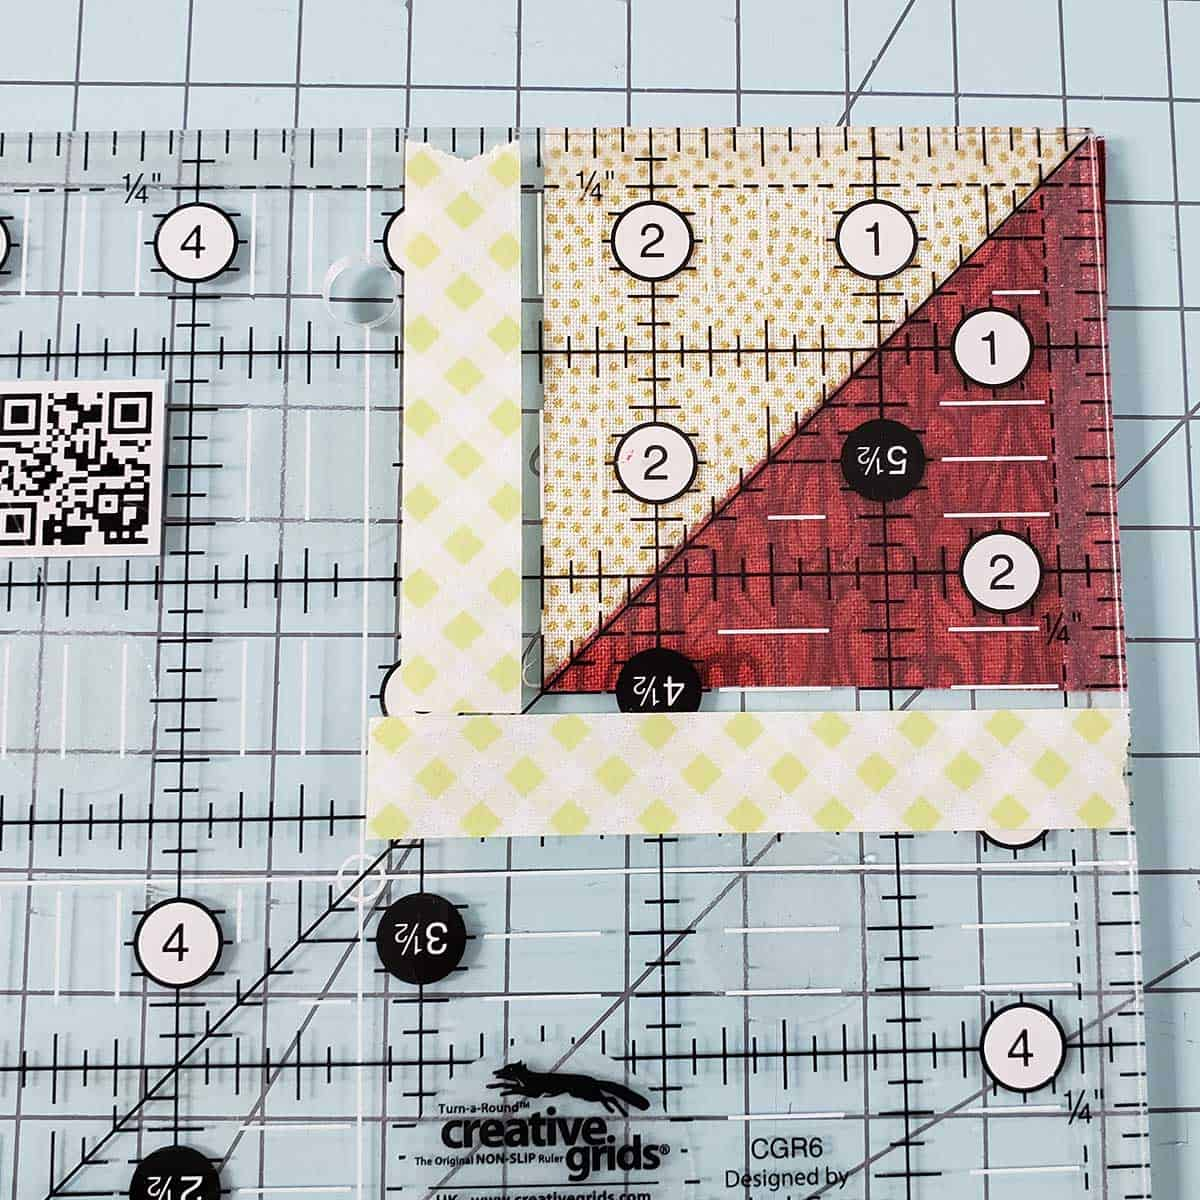 Trimming the quilt blocks to size